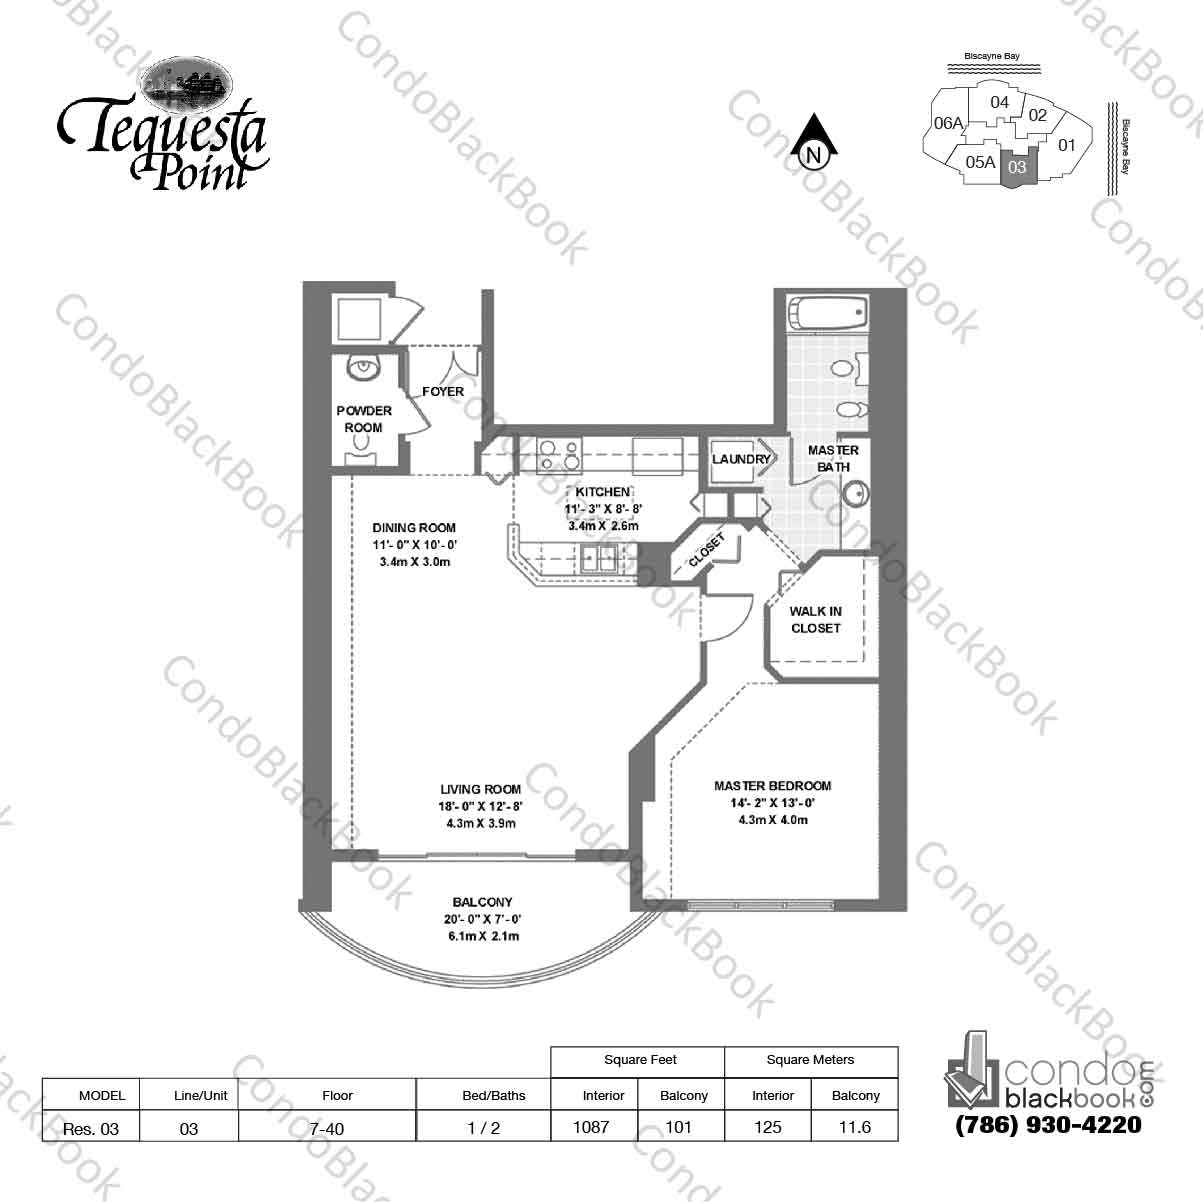 Floor plan for Three Tequesta Point Brickell Key Miami, model Res. 03, line 03, 1 / 2 bedrooms, 1087 sq ft